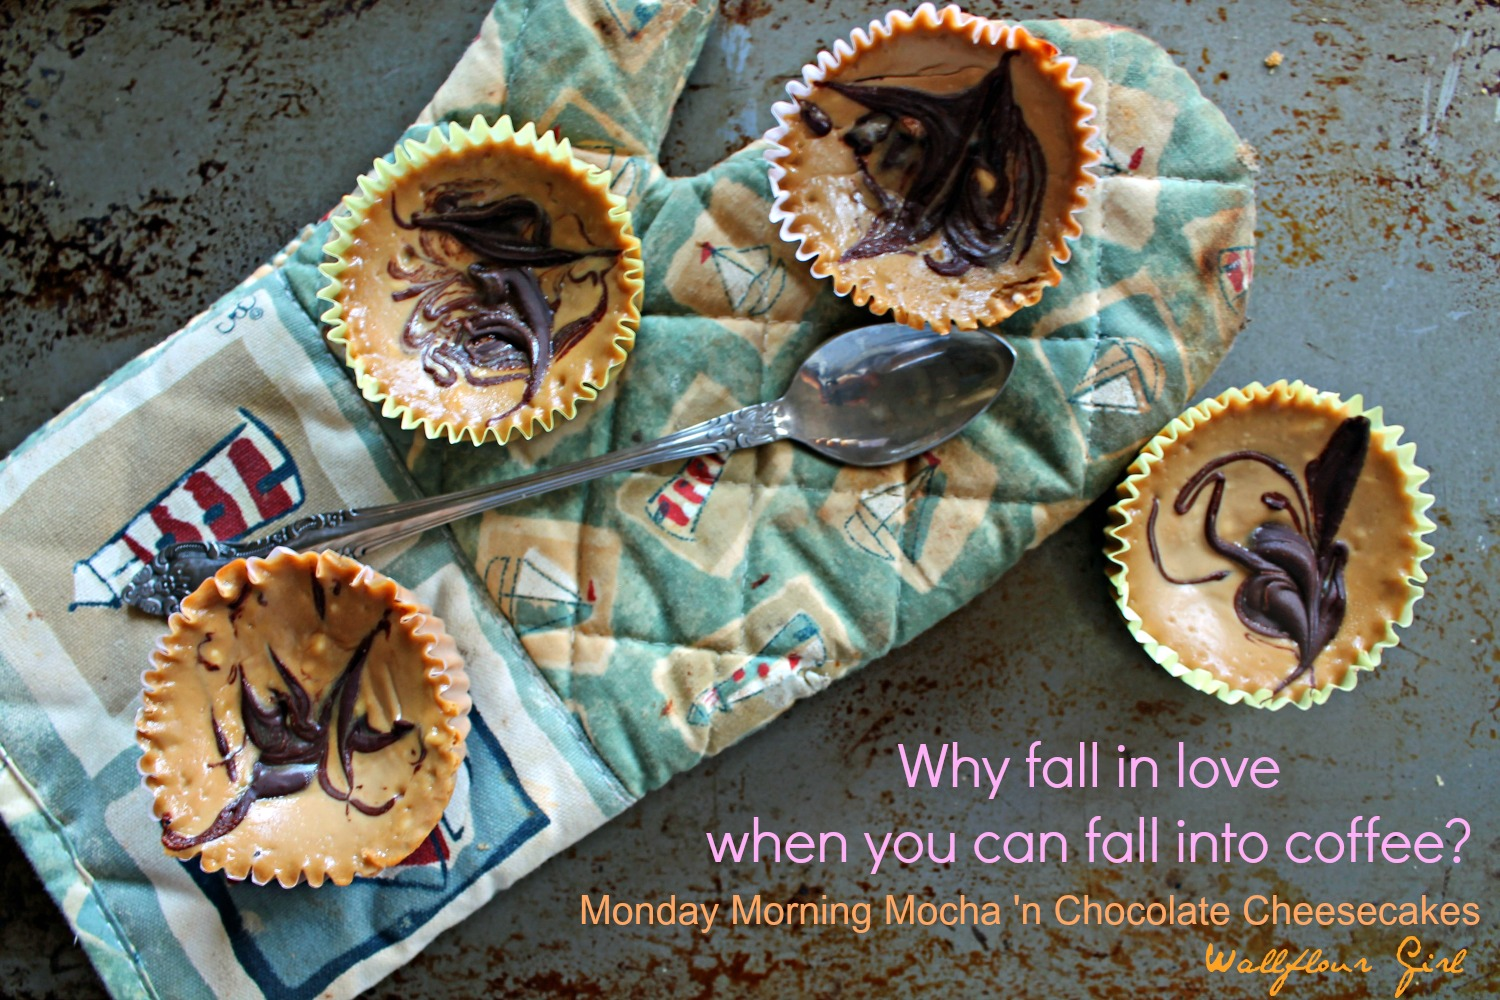 Monday Morning Mocha 'n Chocolate Cheesecake 15--092313